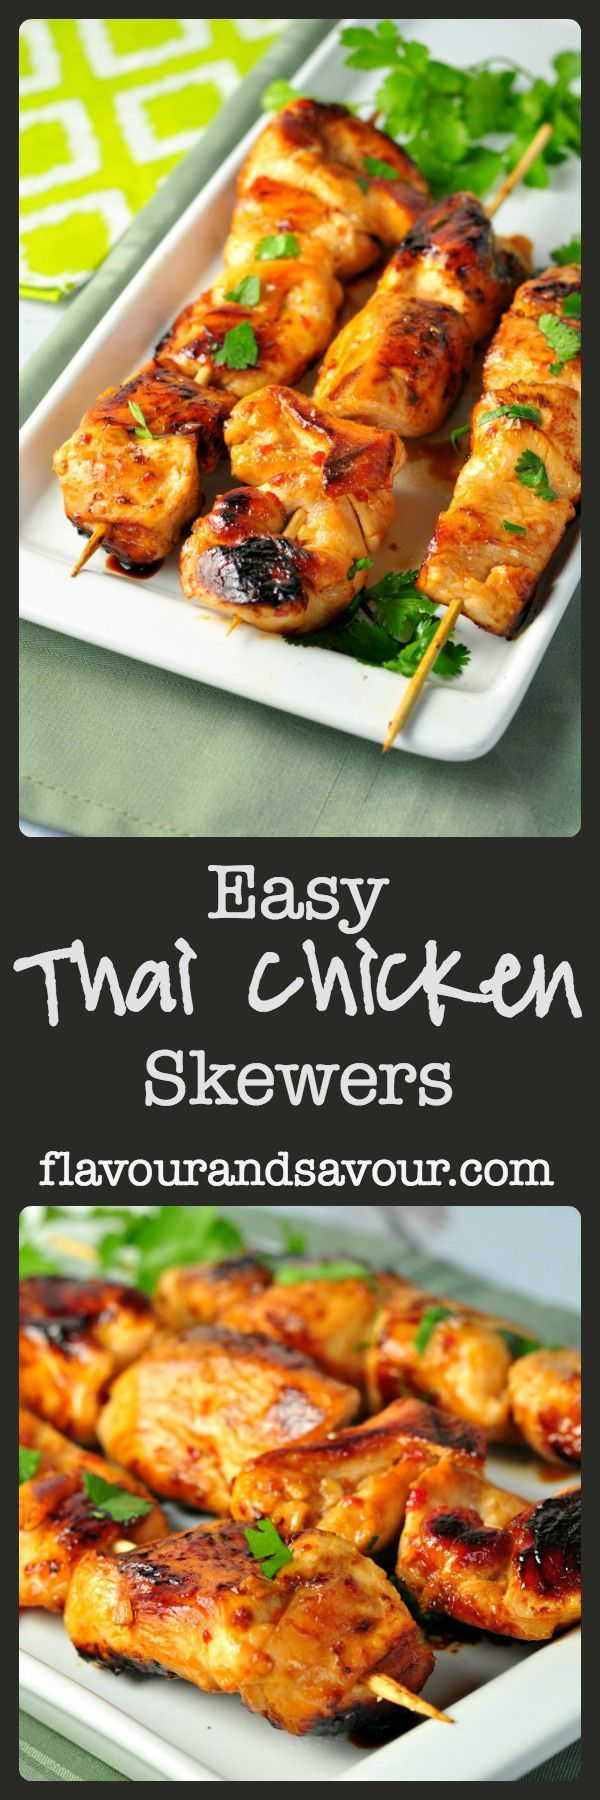 Paleo and so good! Need a quick weeknight dinner? These paleo Easy Thai Chicken Skewers are sweet, spicy and succulent, flavoured with garlic, ginger, honey and chili paste. Lots of finger-licking yumminess. |www.flavourandsavour.com